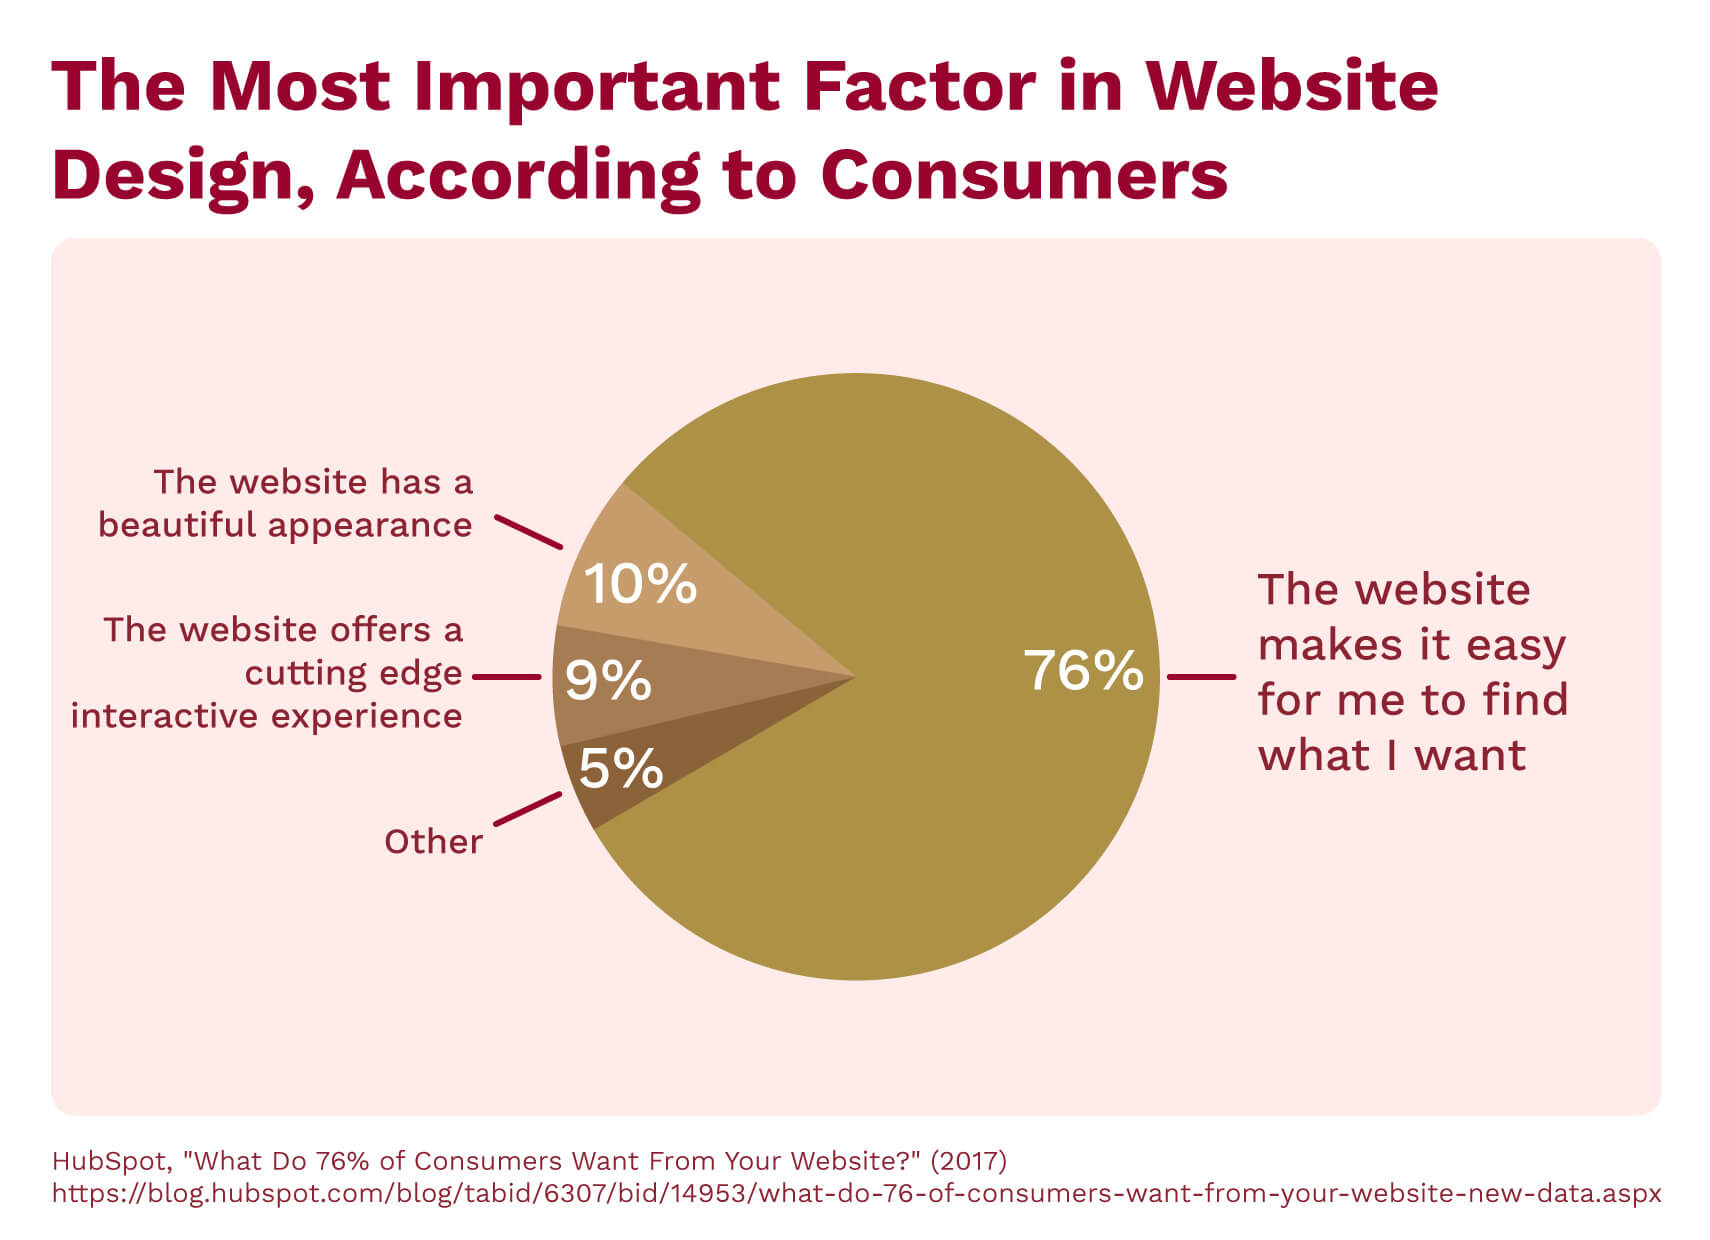 A chart showing the most important factors in website design, according to consumers